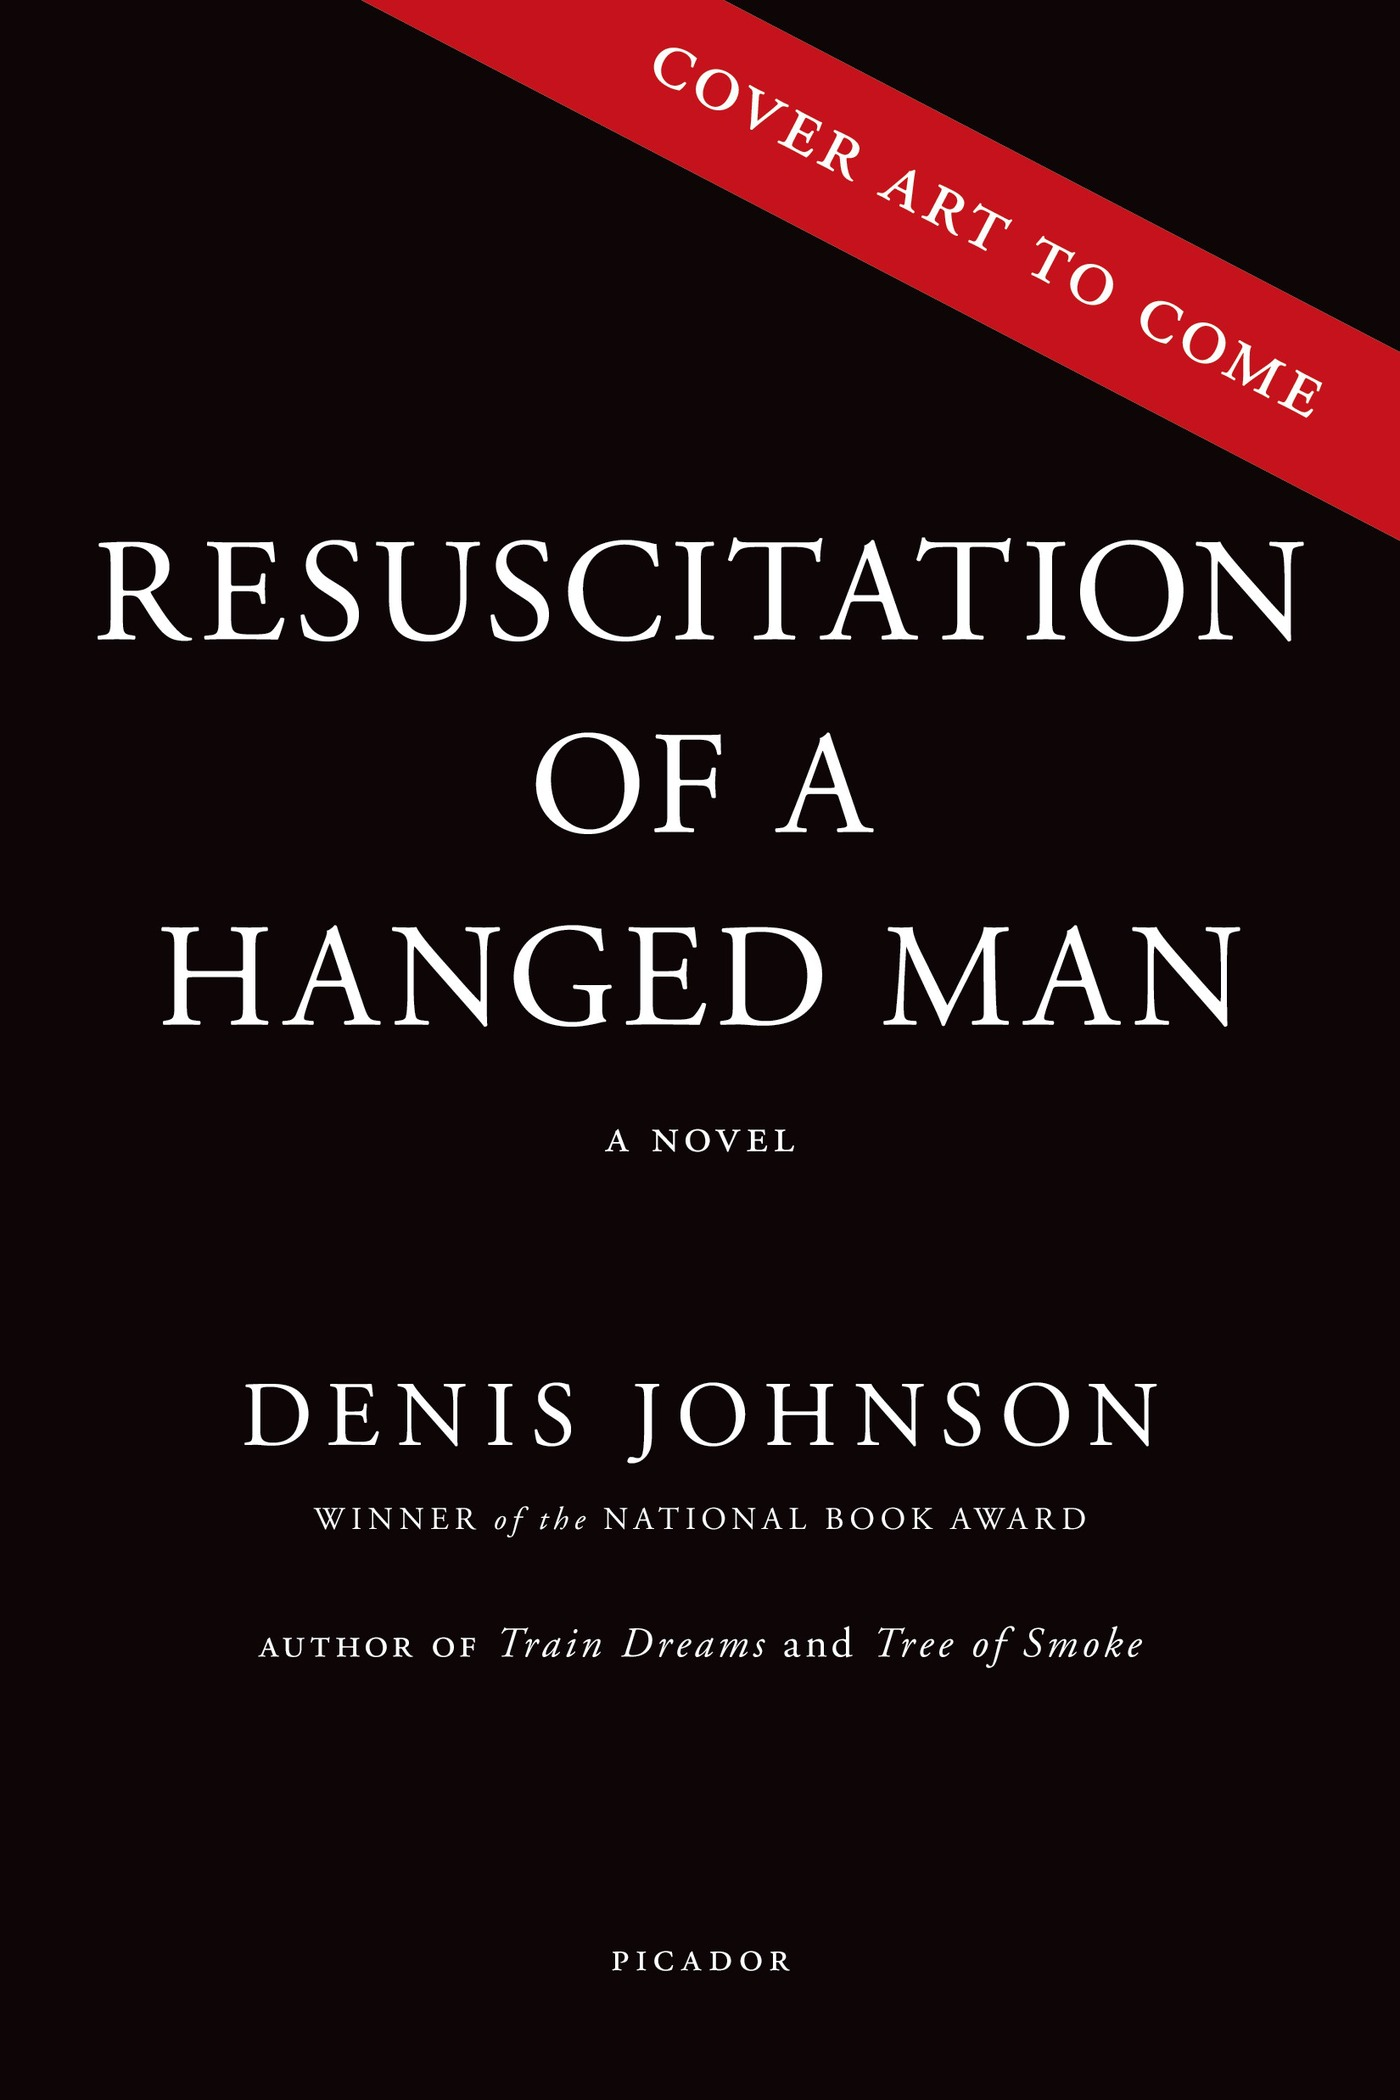 The Resuscitation of a Hanged Man By: Denis Johnson